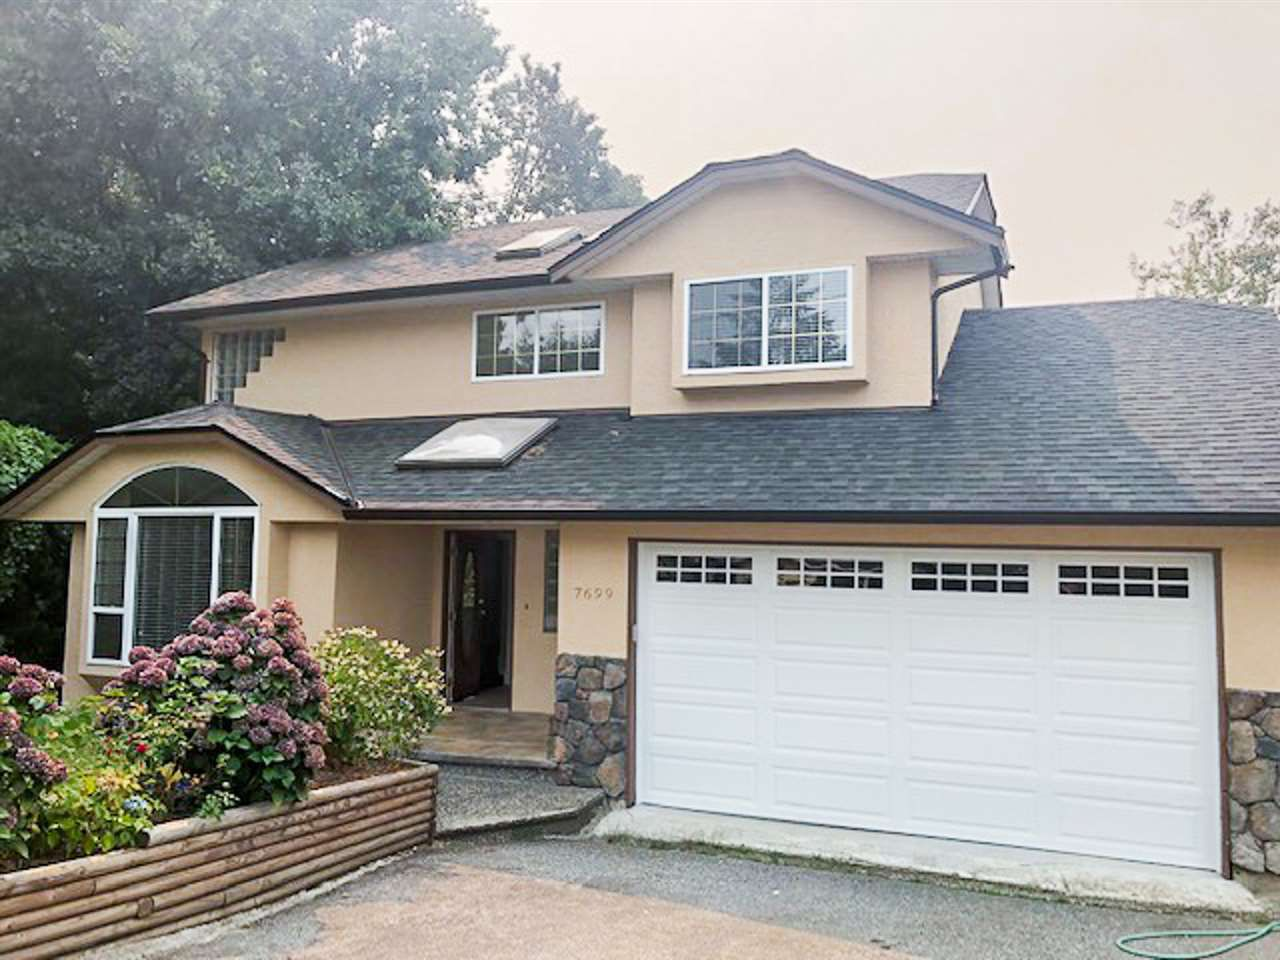 Main Photo: 7699 ROOK Crescent in Mission: Mission BC House for sale : MLS®# R2352929